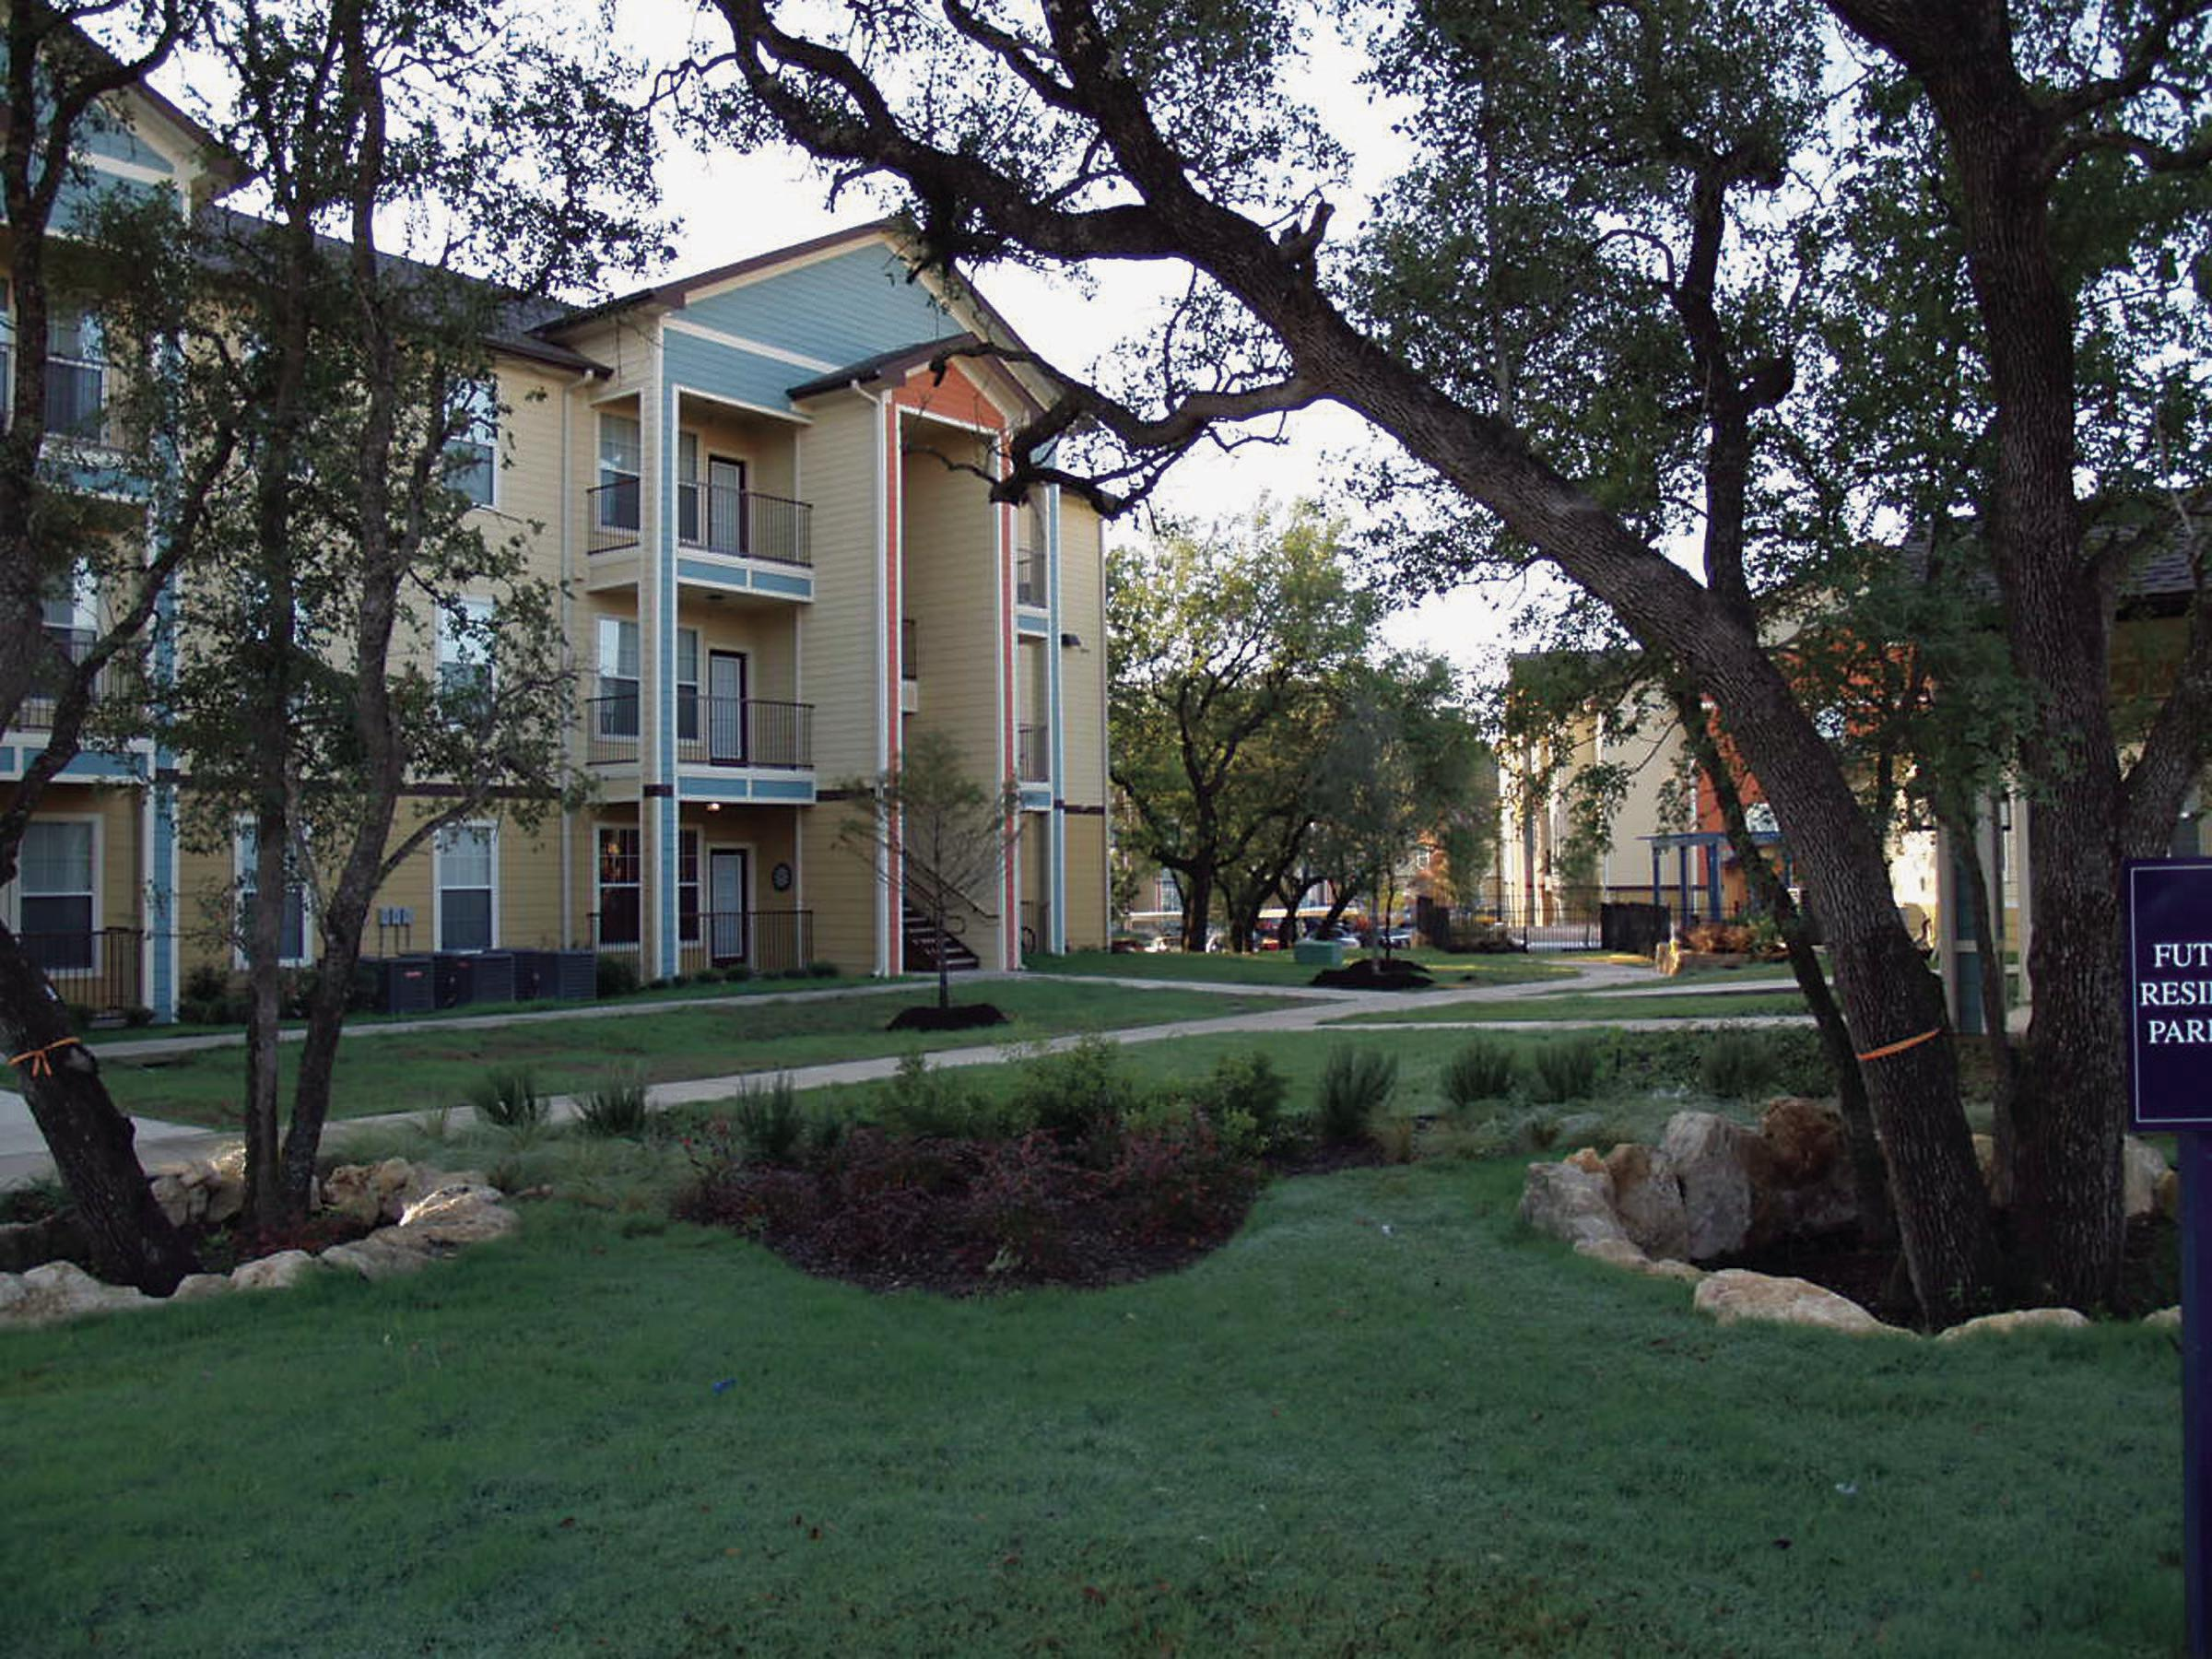 Hill Country Place Apartments image 6